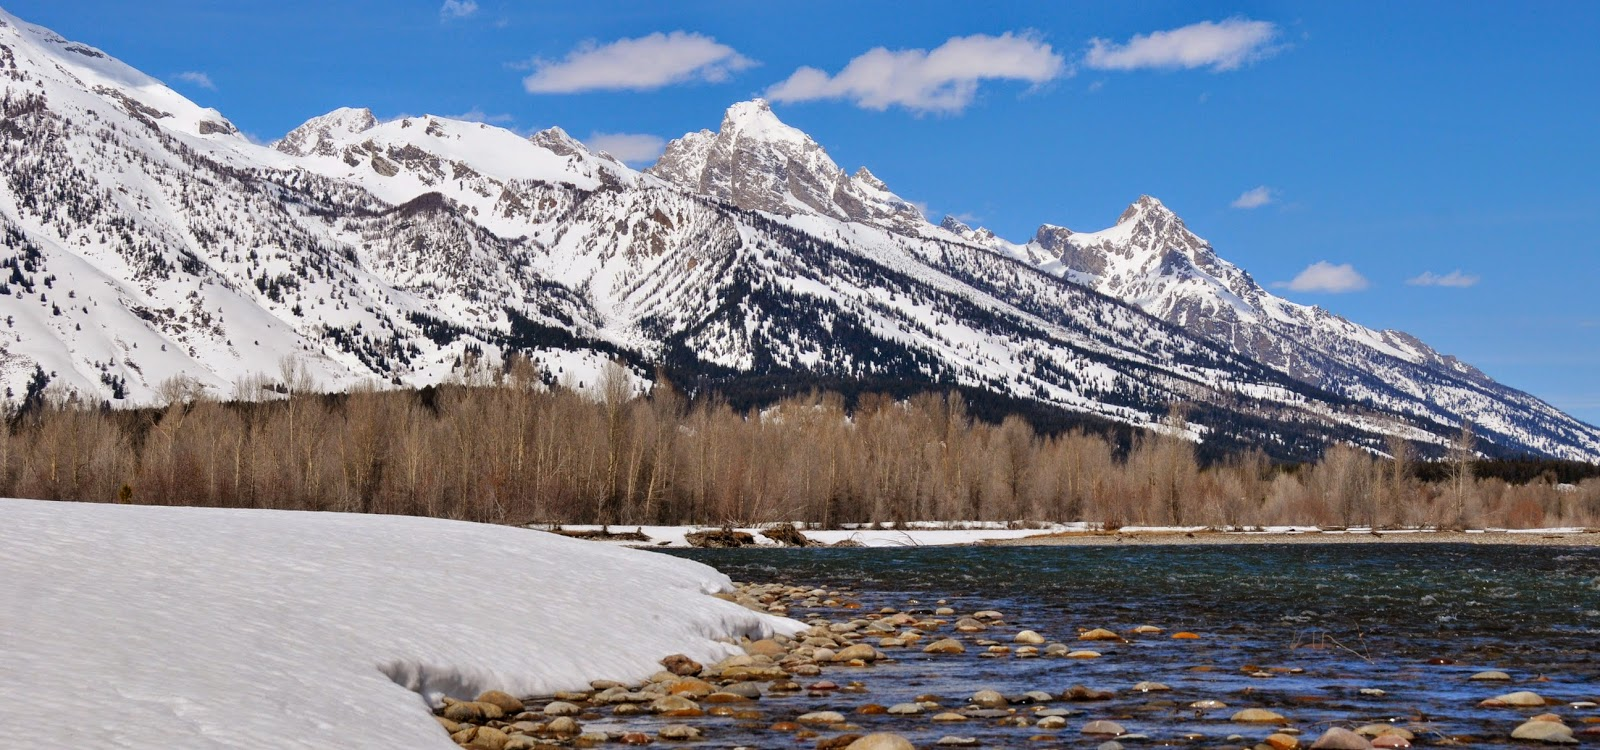 Jackson hole fly fishing report february 15 2015 for Fly fishing jackson hole